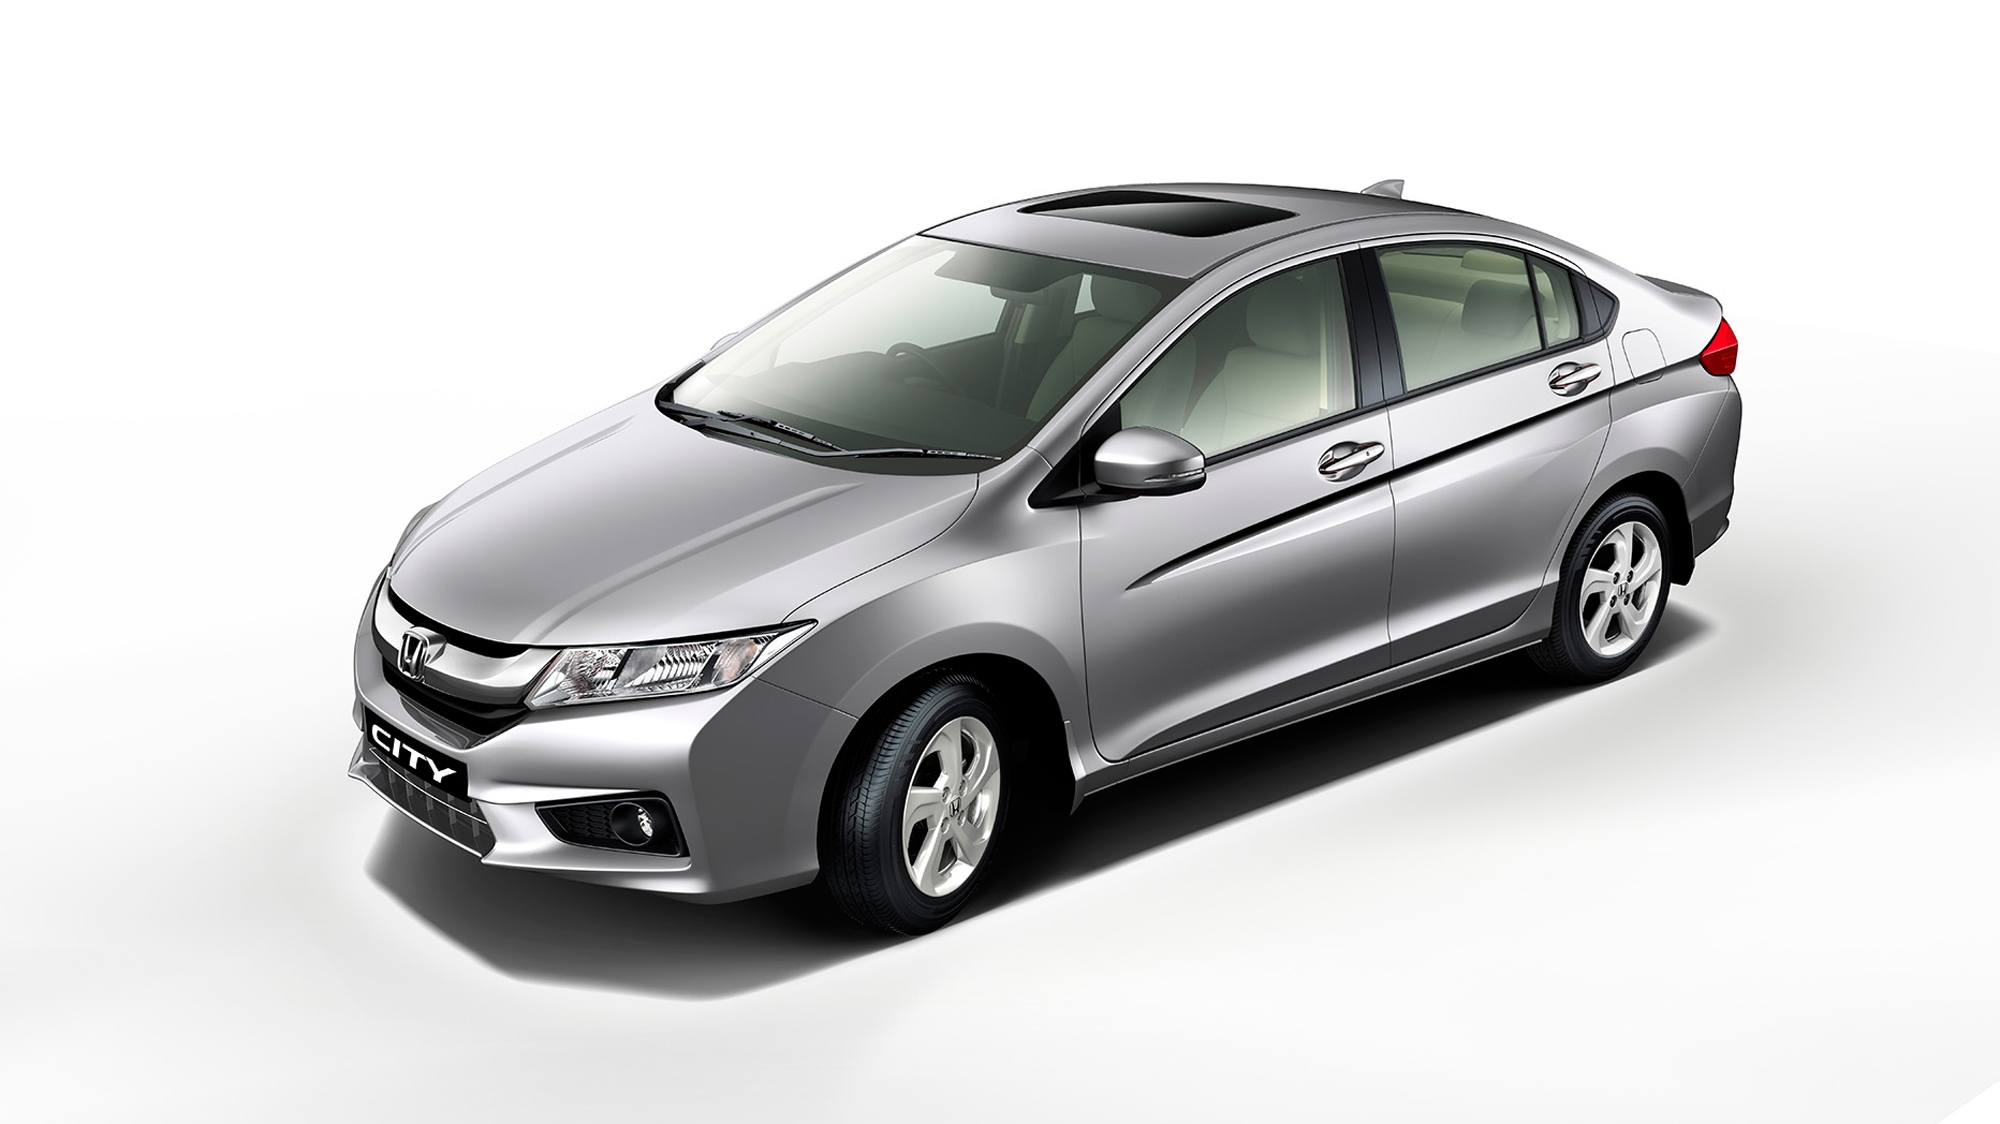 honda recalls civic city and jazz over faulty airbags in. Black Bedroom Furniture Sets. Home Design Ideas